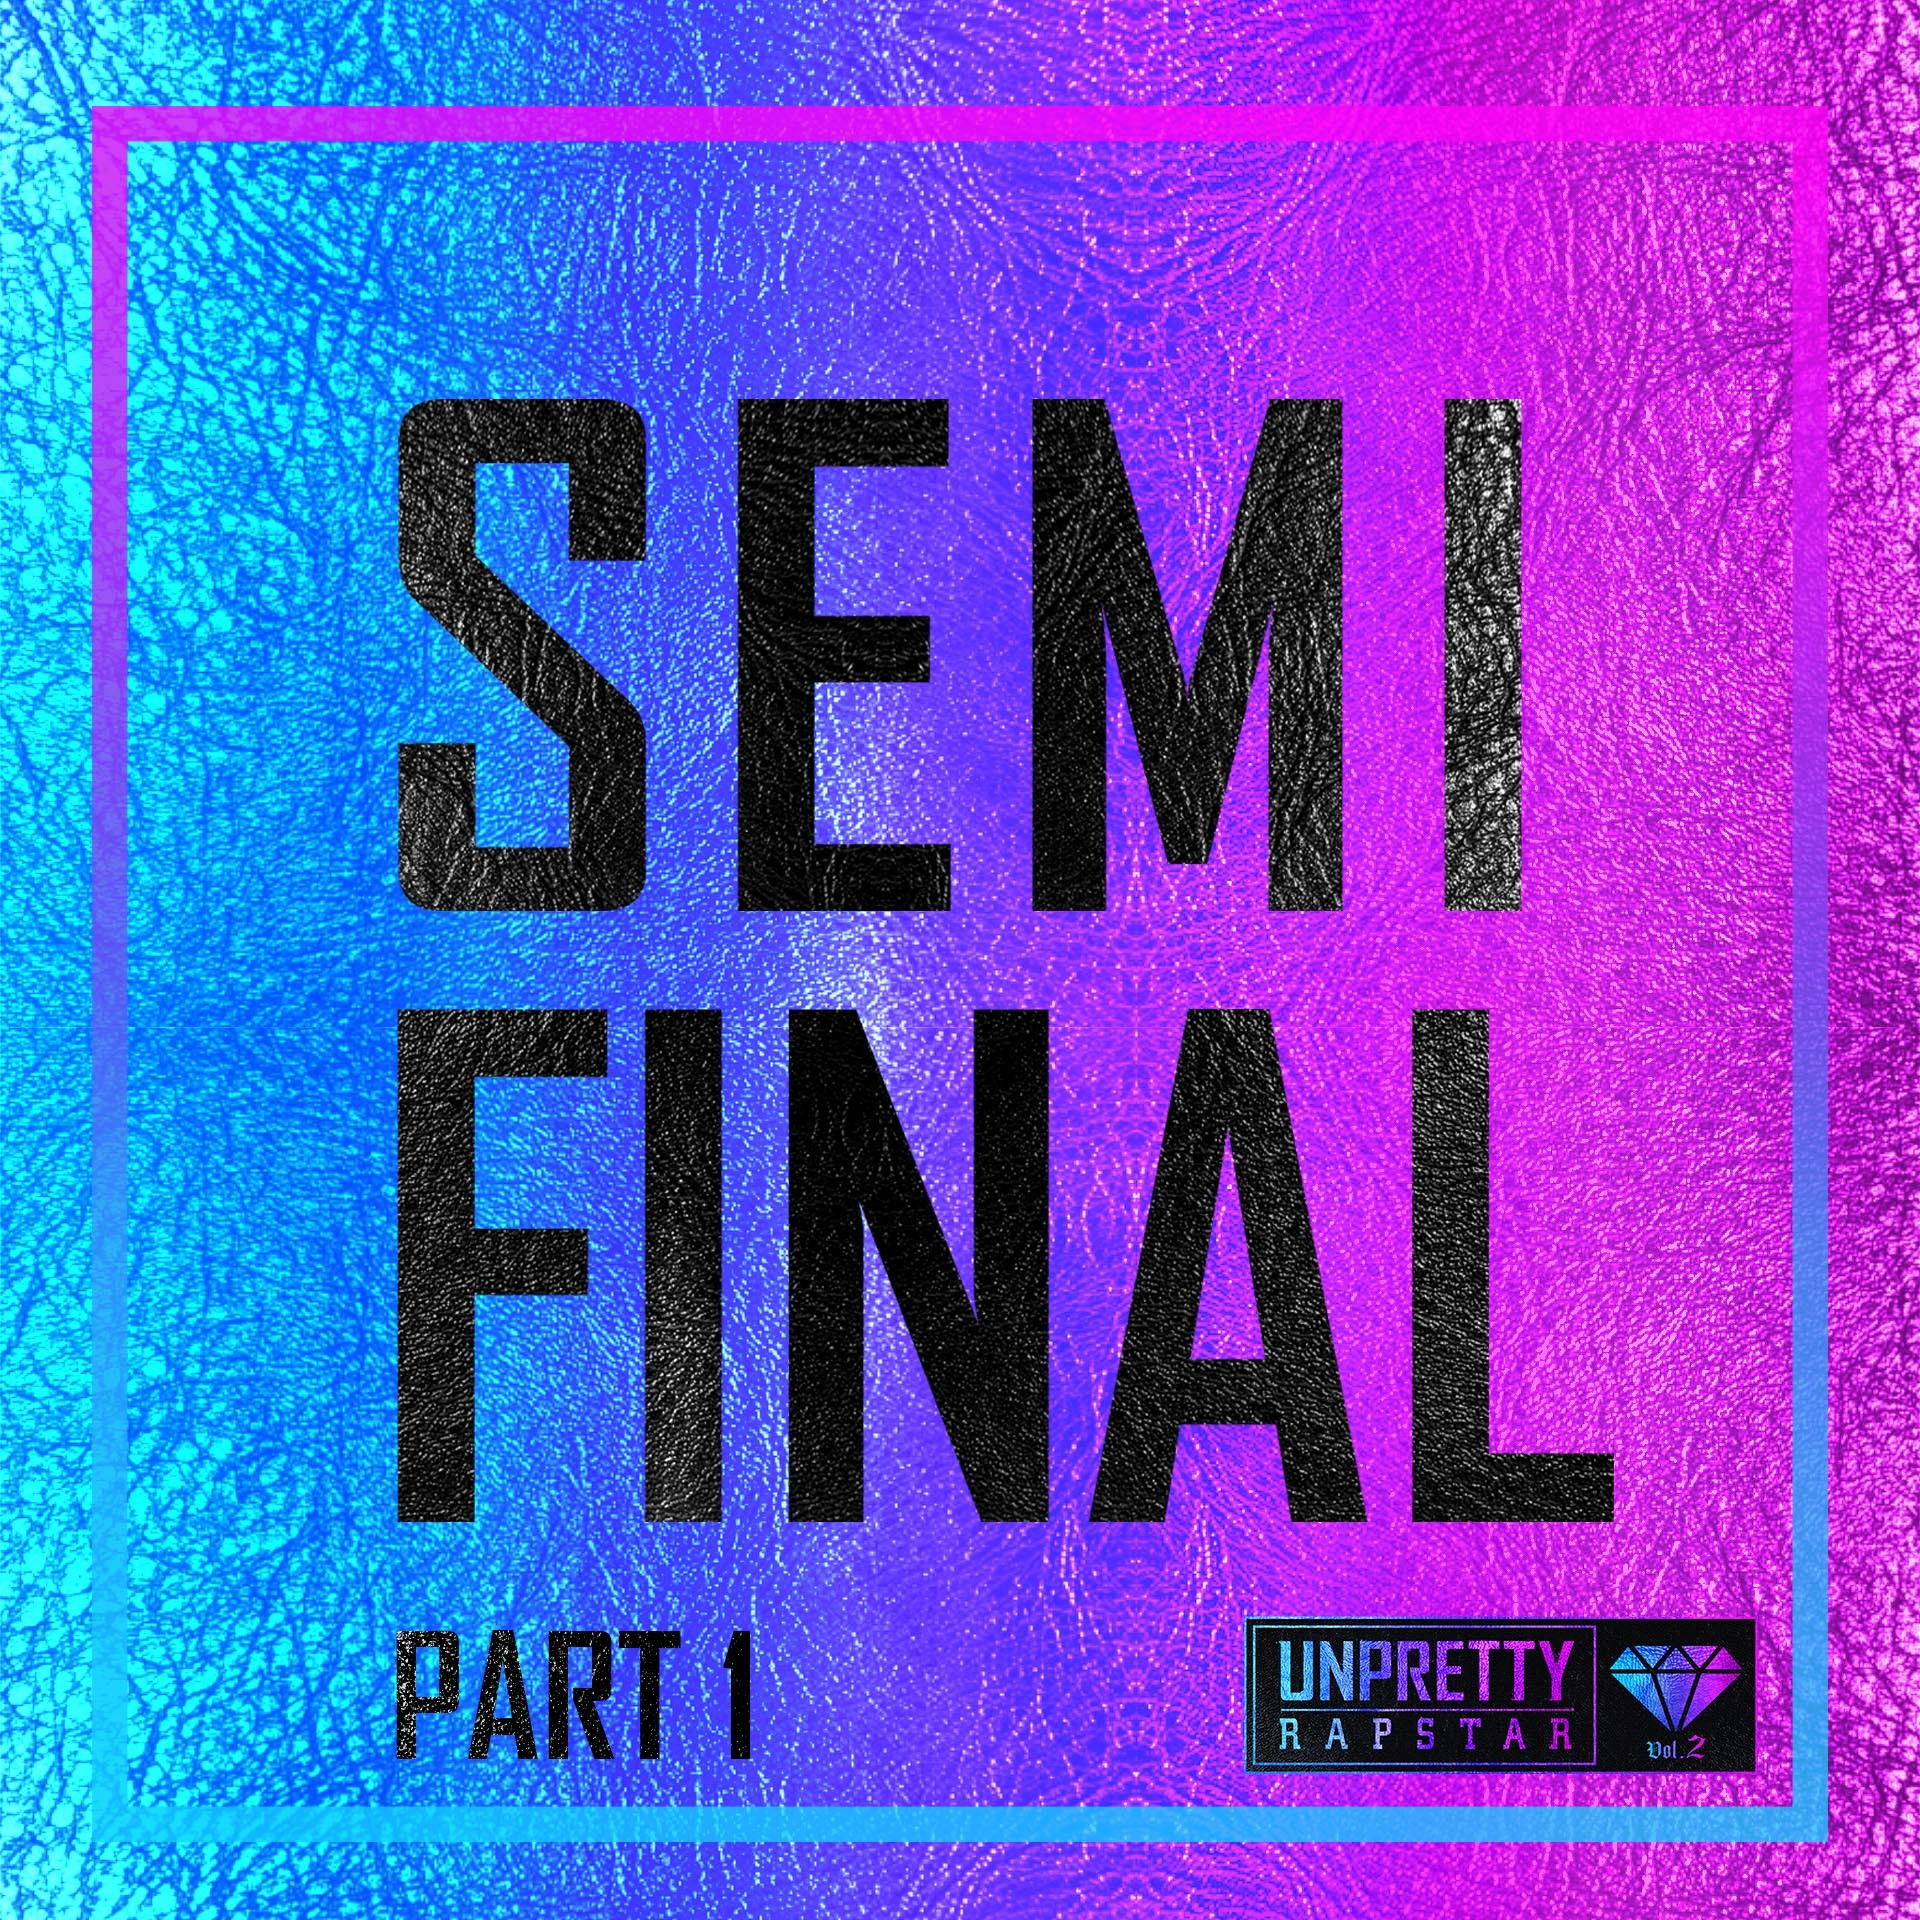 Unpretty Rapstar 2 Semi Final Part.1 - Various Artists K2Ost free mp3 download korean song kpop kdrama ost lyric 320 kbps